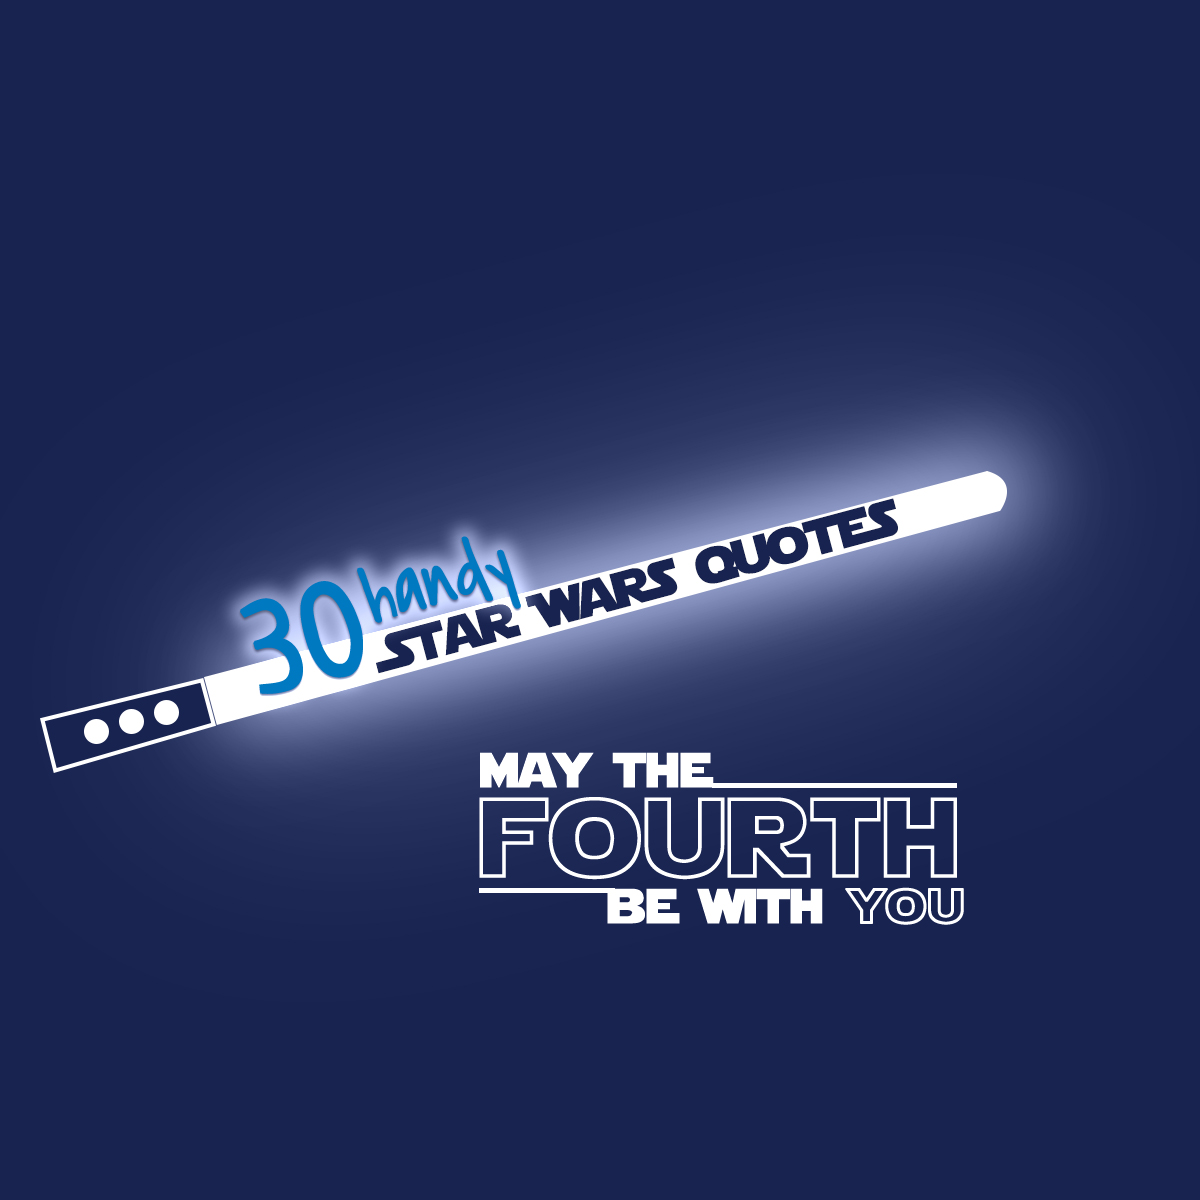 May the 4th be with you – 30 Star Wars quotes to fit any IT